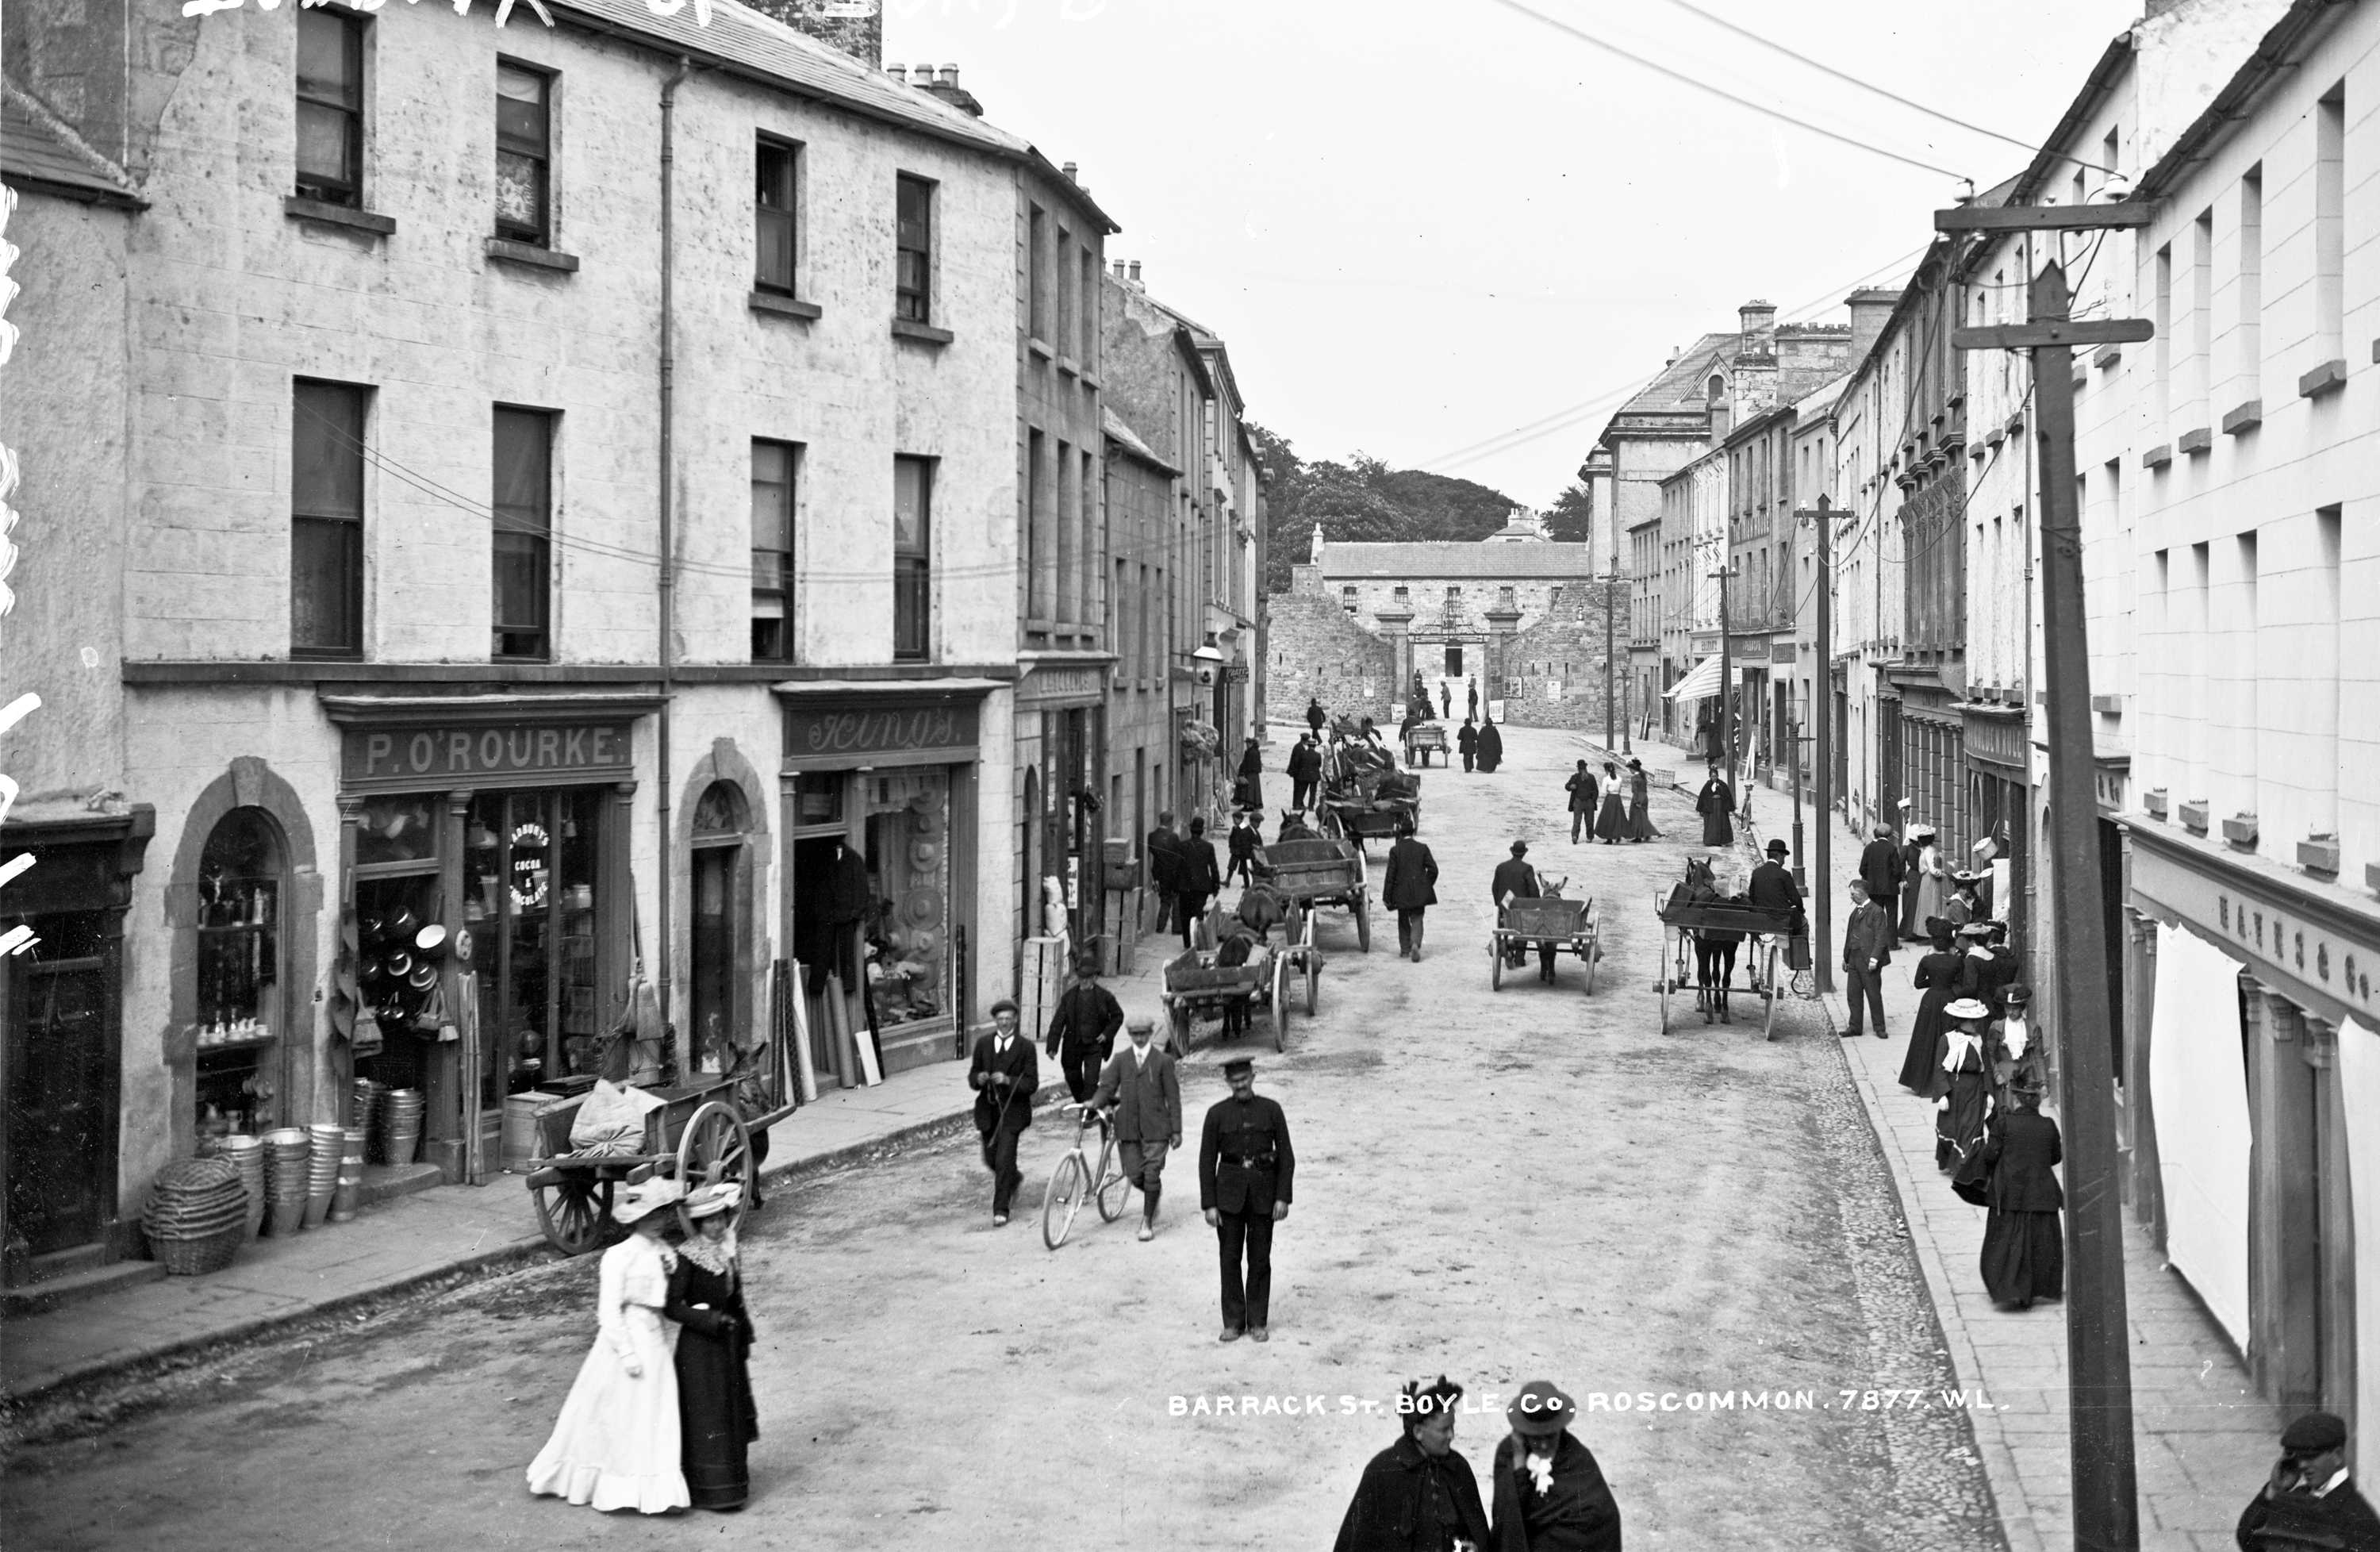 Babes, bikes and buckets on Barrack Street in Boyle!